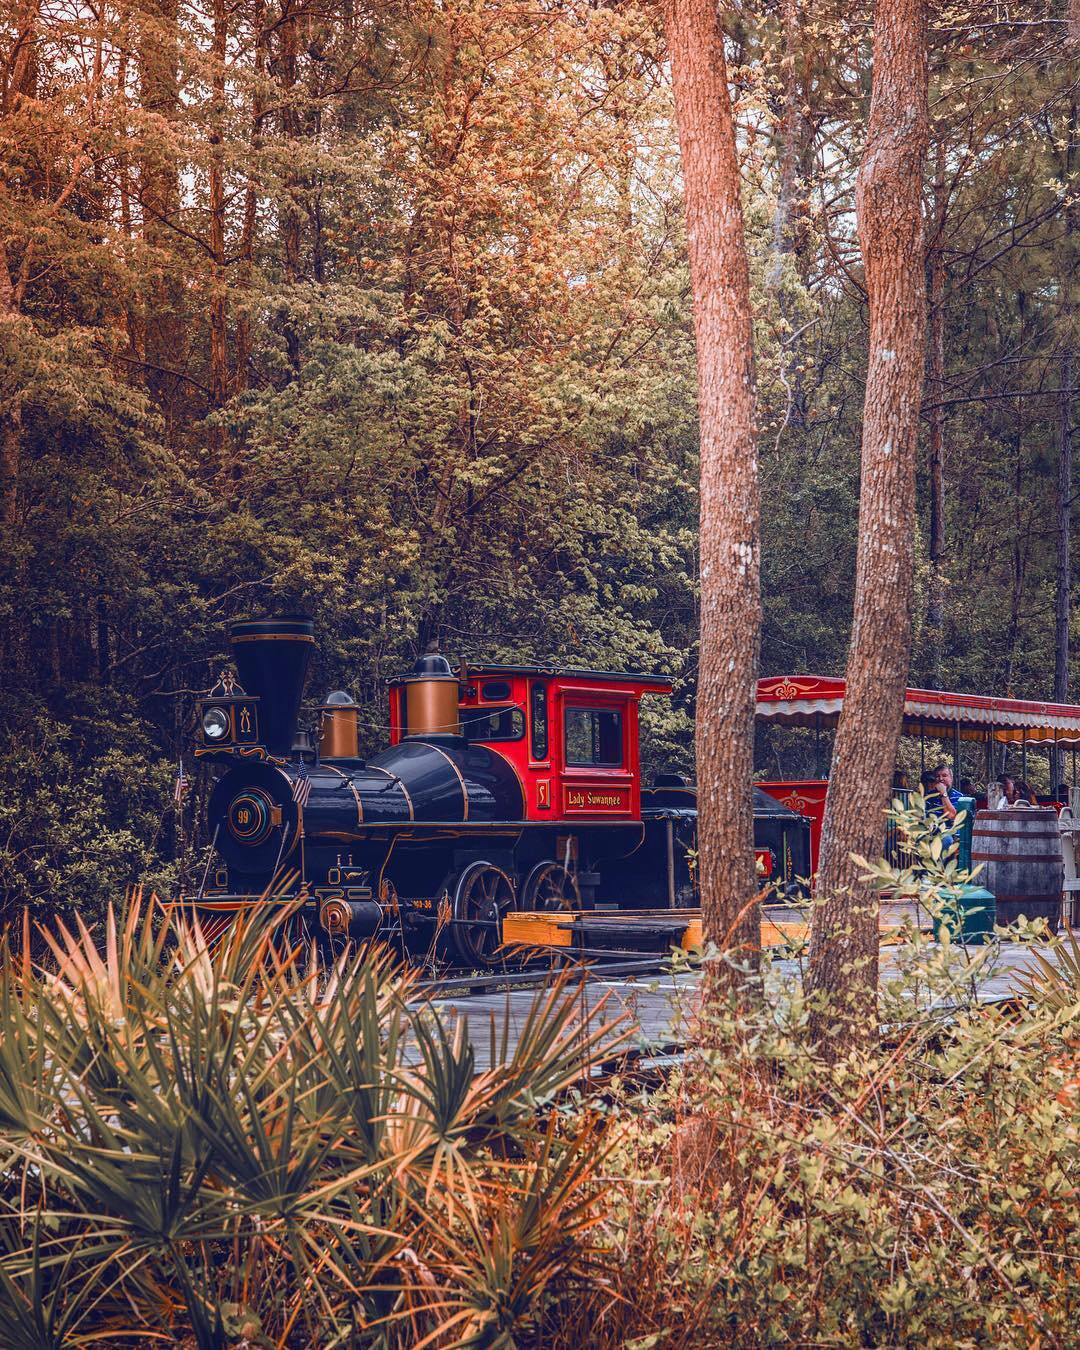 Okefenokee Swamp Park train. Photo by @tolgy75